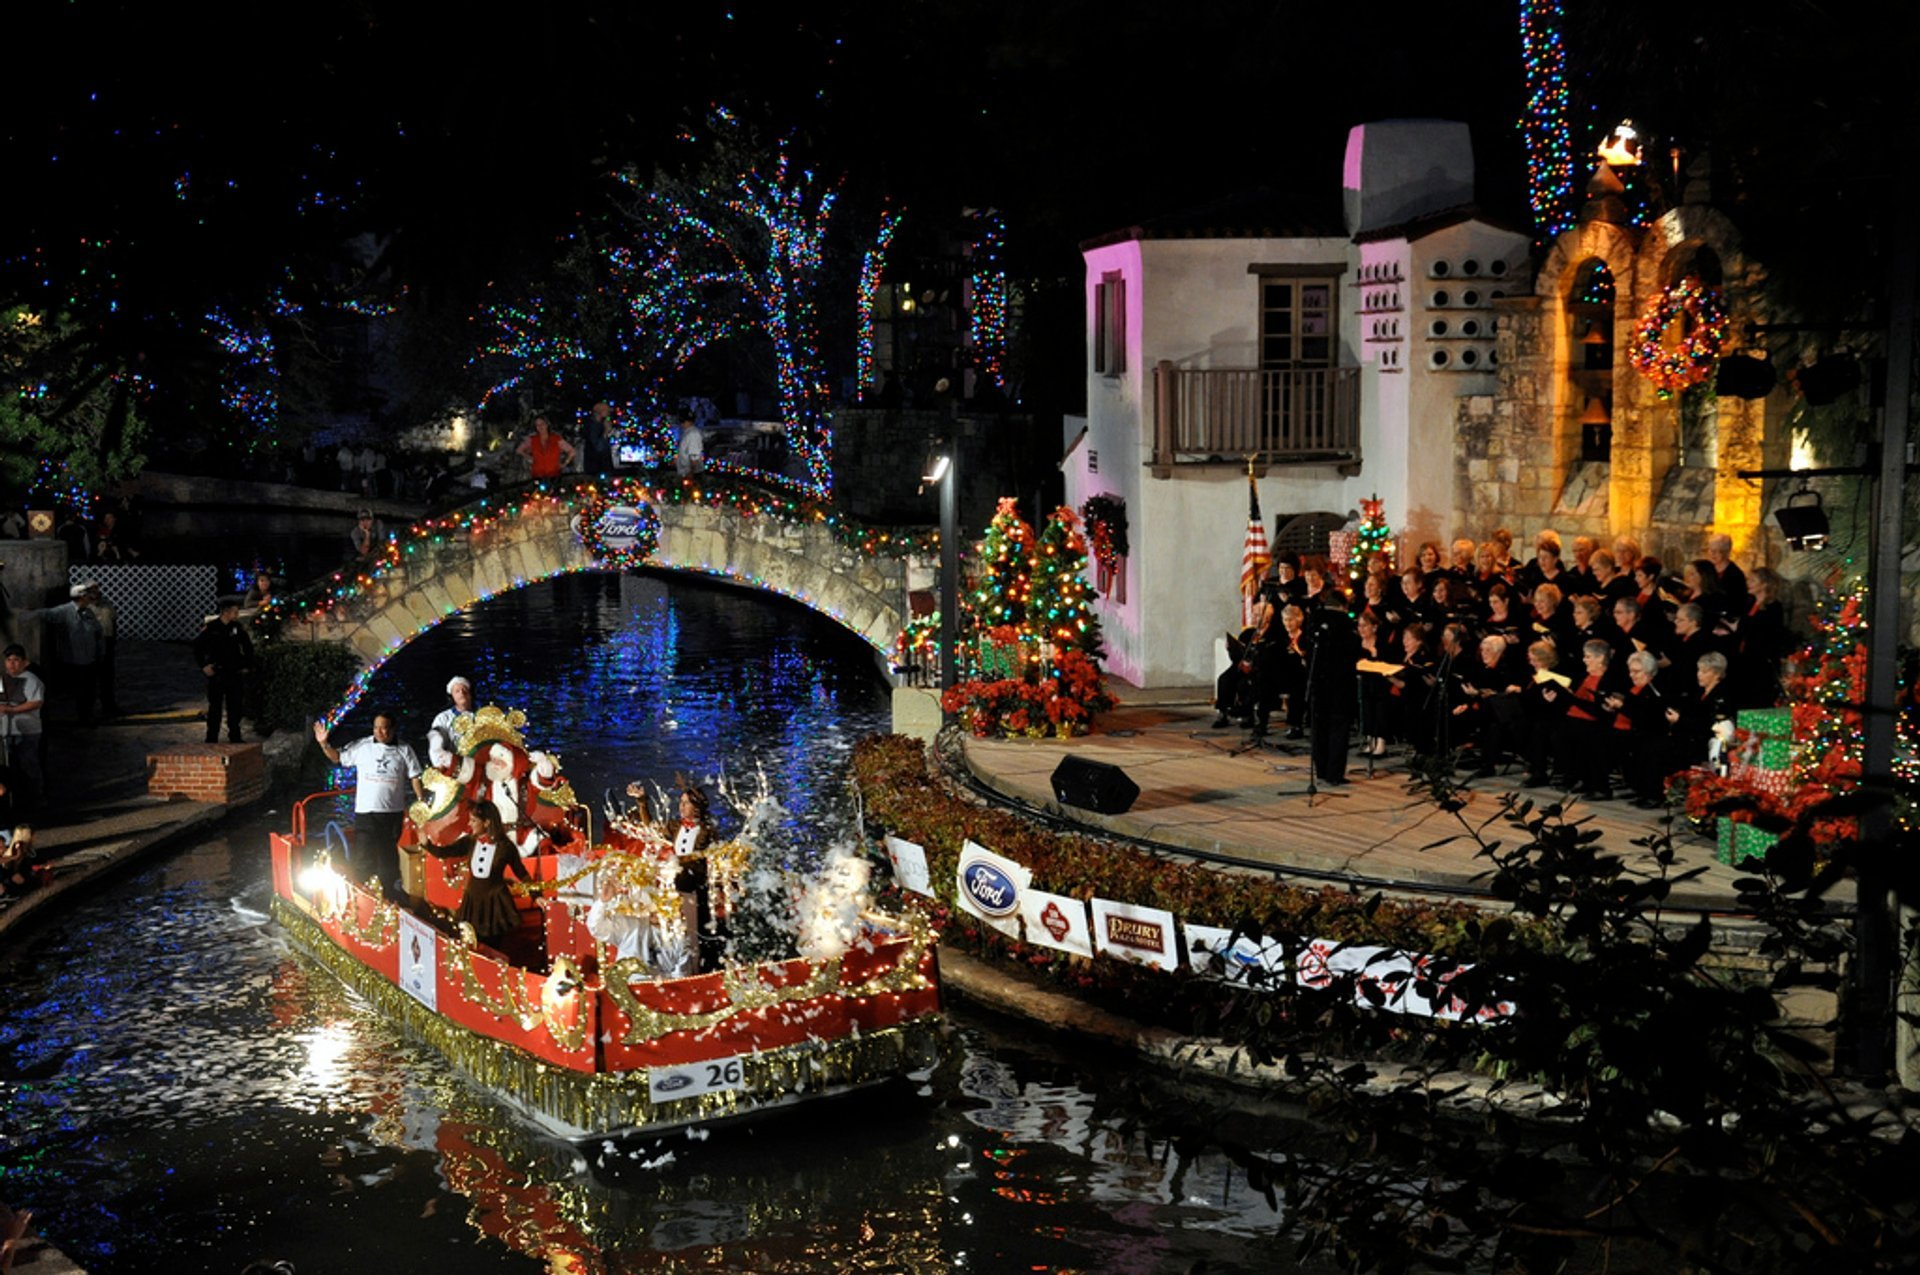 Ford Holiday River Parade in Texas - Best Time